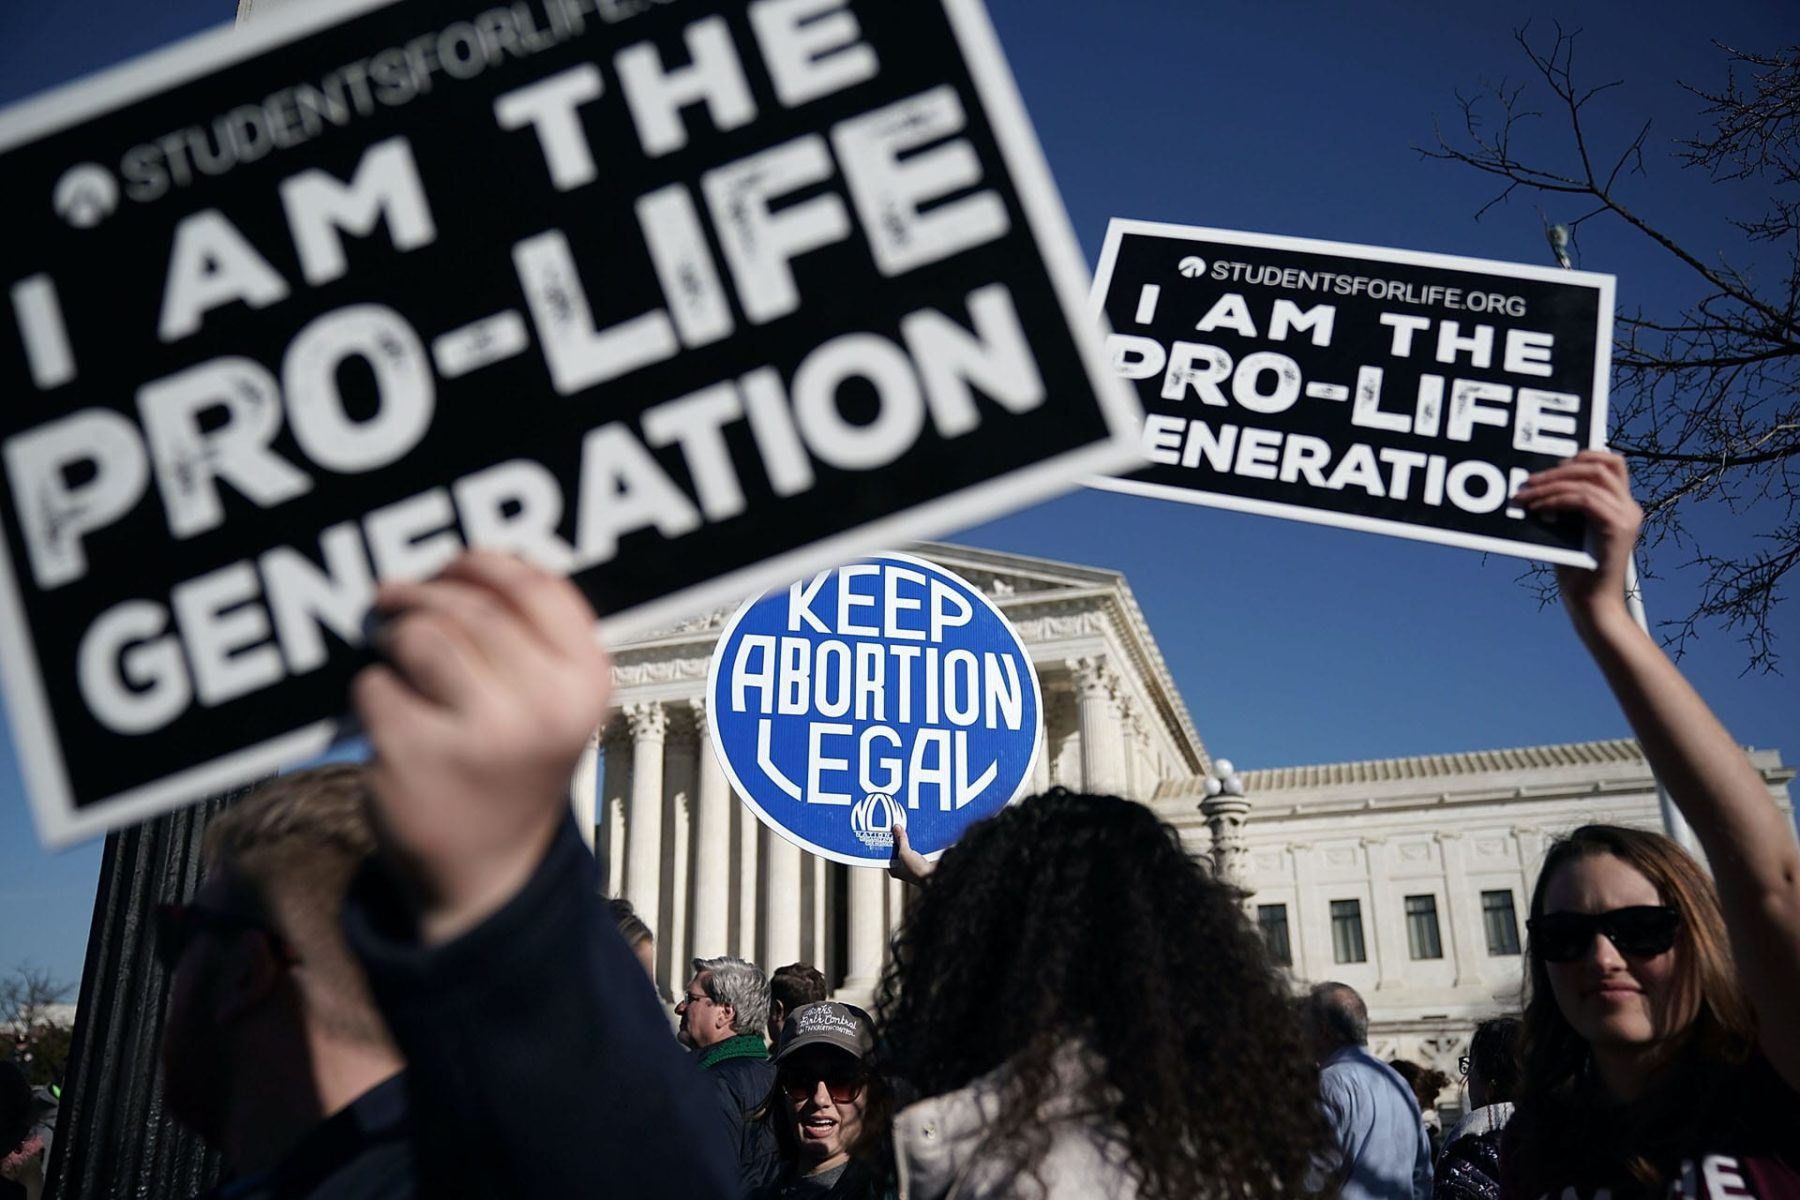 Protesters hold anti-abortion and abortion-rights signs in front of the Supreme Court.